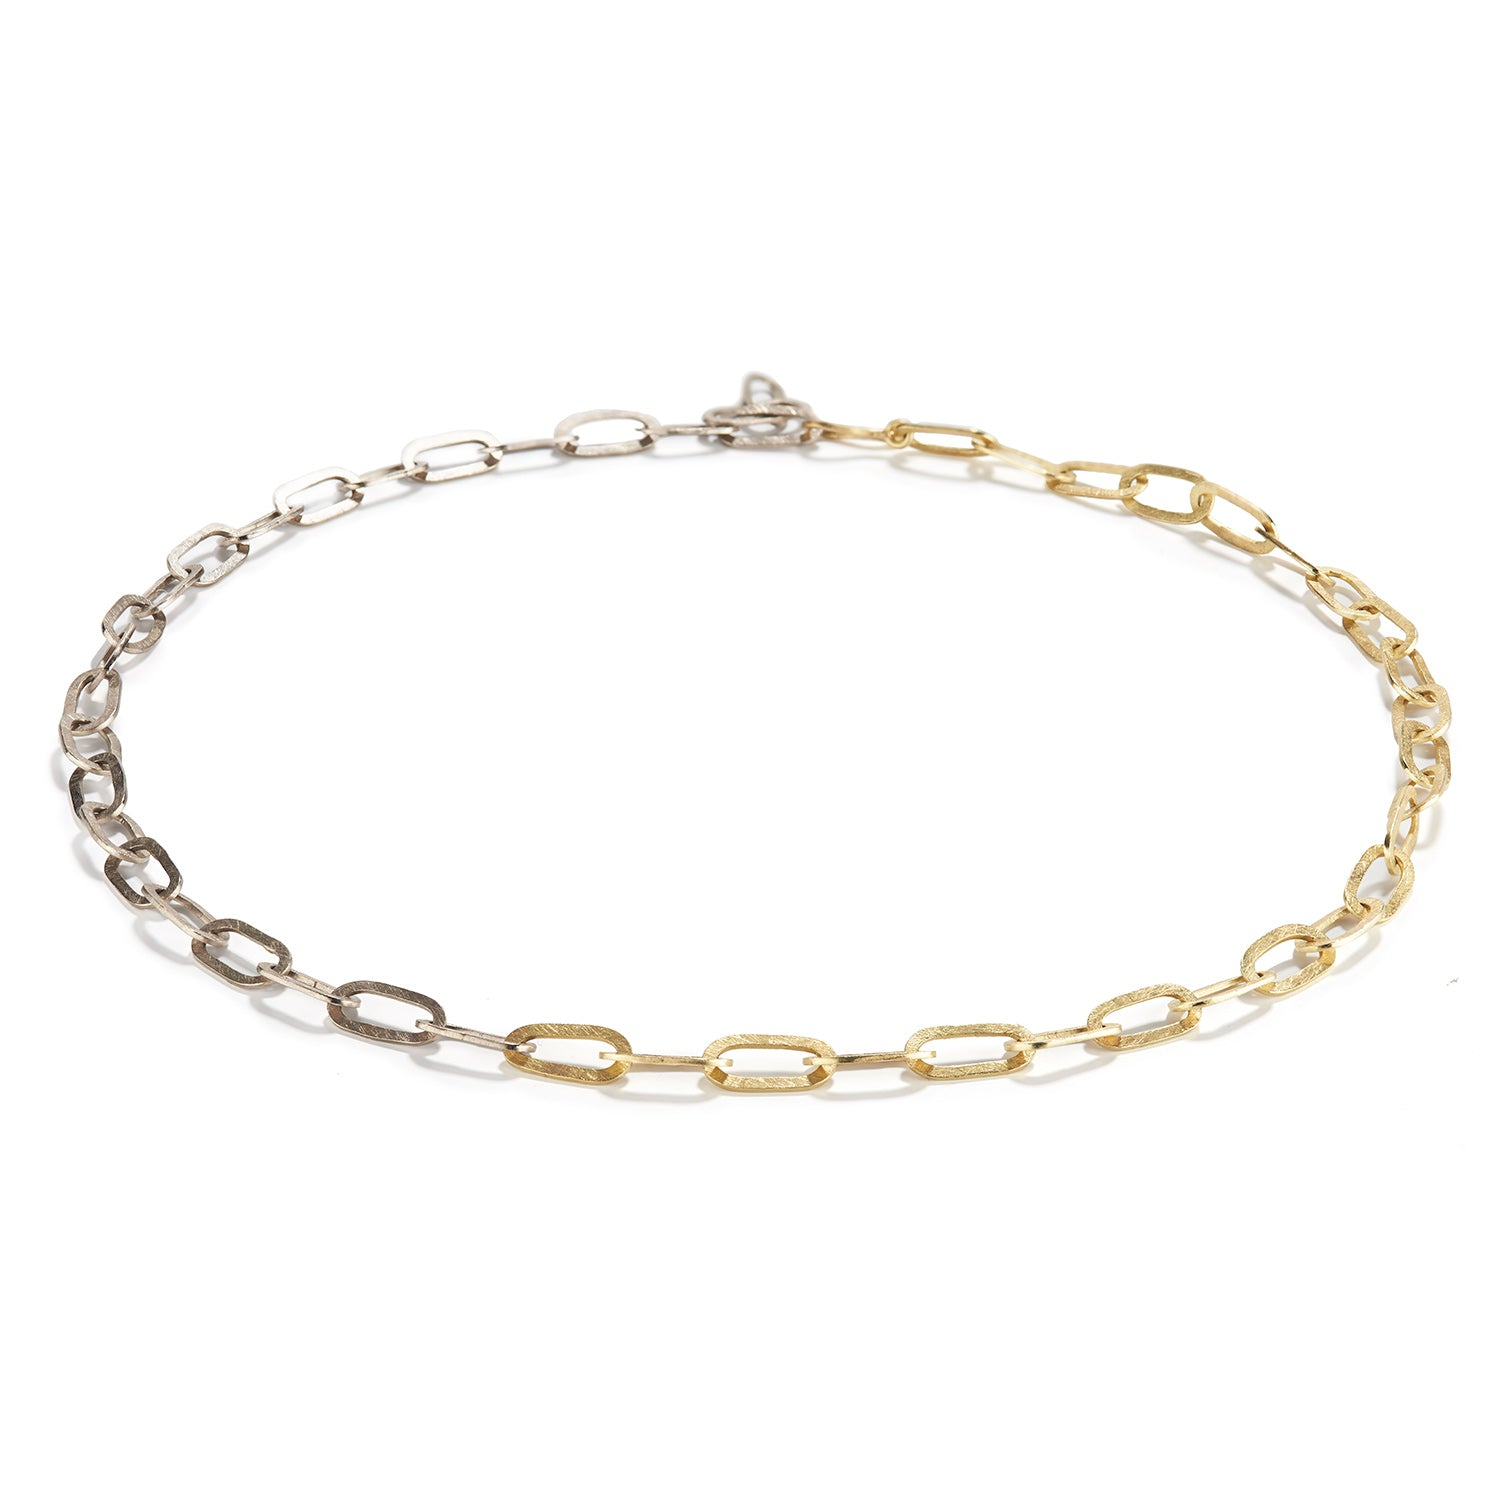 Handmade White and Yellow Gold Chain